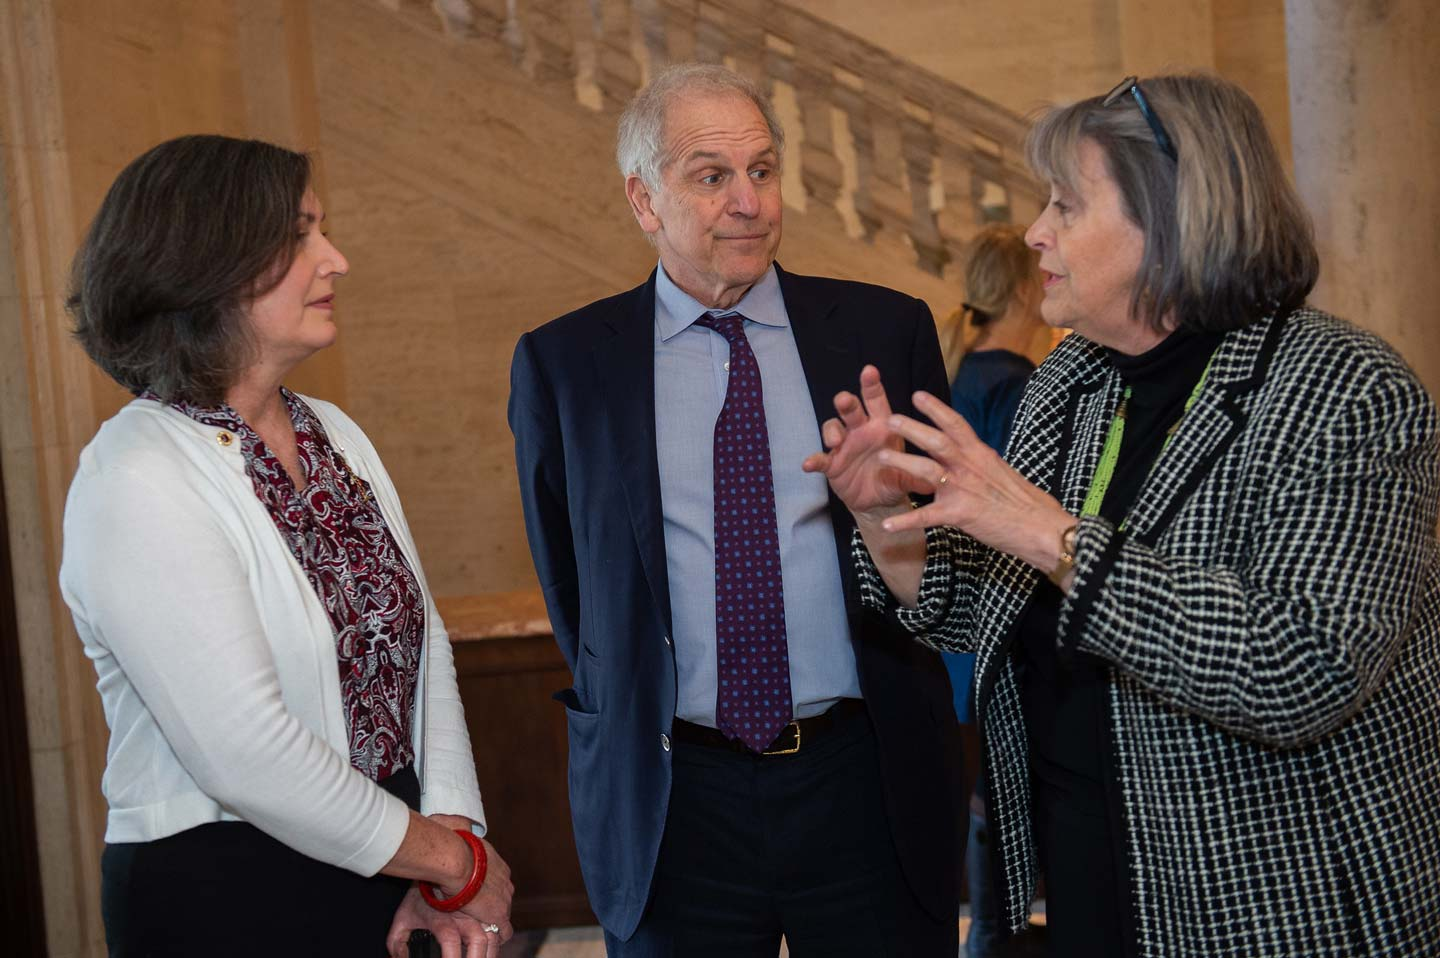 Brent Glass '69 with Elaine Stomber '89 and Diane Shaw at a reception for the launch of the Queer Archives Project